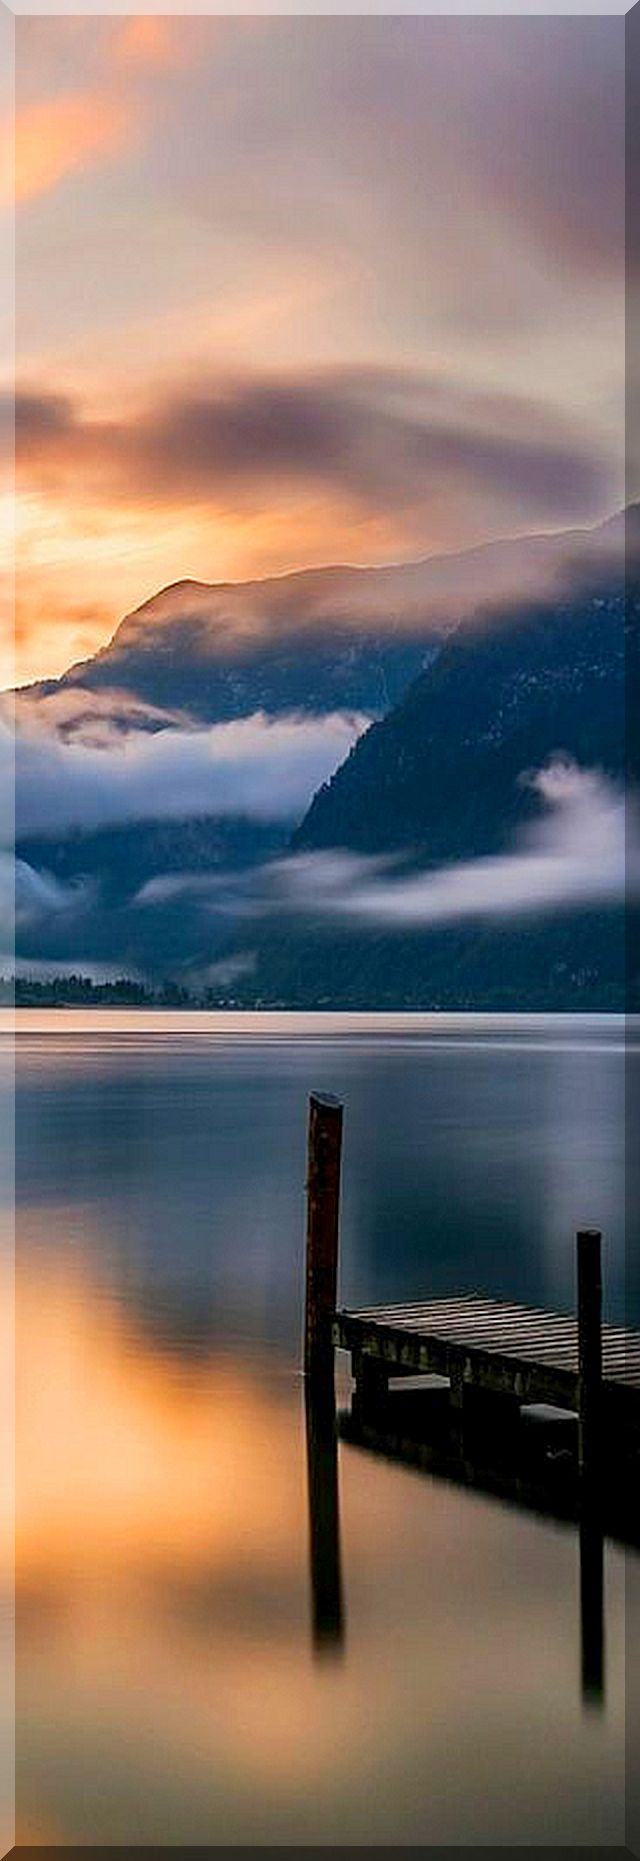 AUSTRIA - HALLSTATT - amazing lake shot #photo by Richard Beresford Harris #reflection sky sunset nature landscape